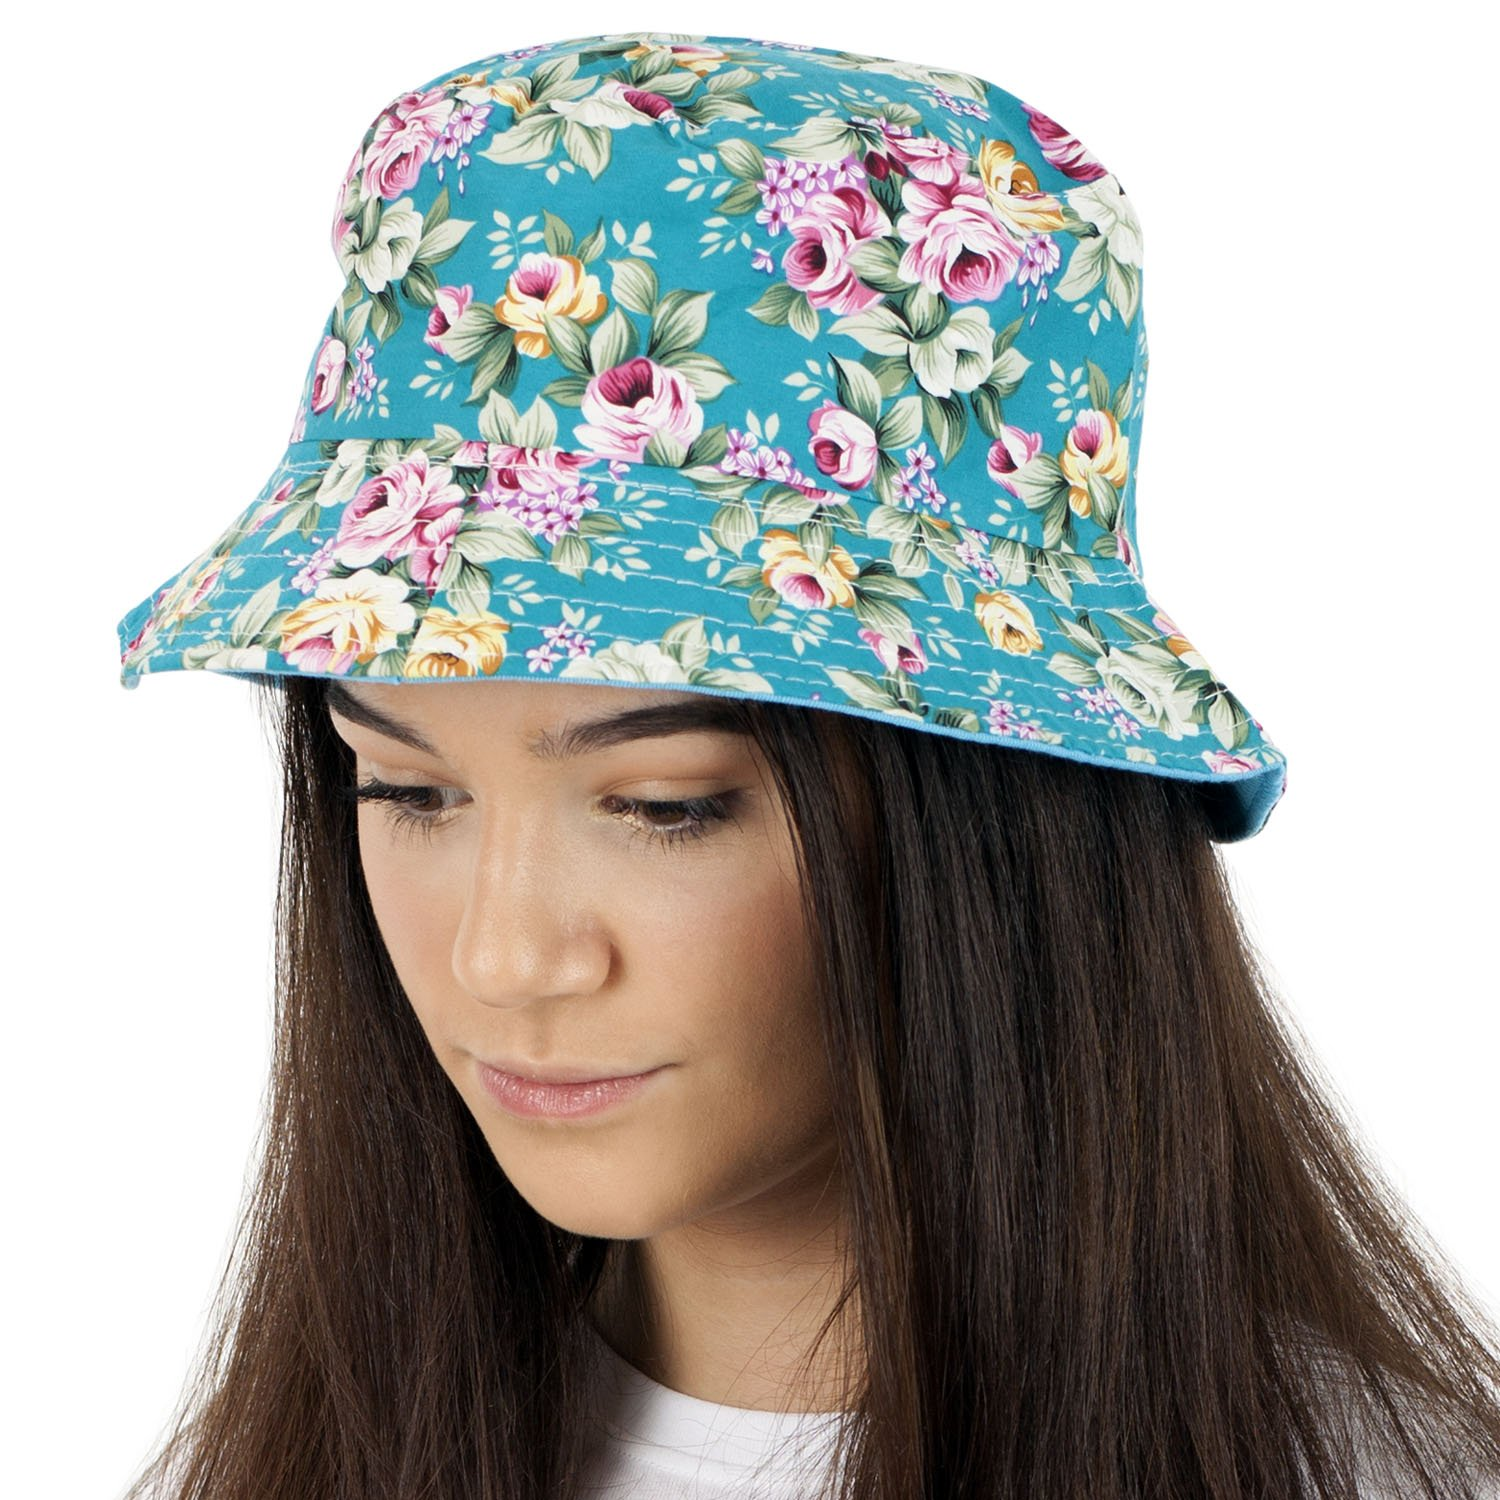 85cbf45fb7eb0f TOSKATOK UPF 50+ Ladies Reversible Floral Cotton Bush Bucket Sun Hat  product image